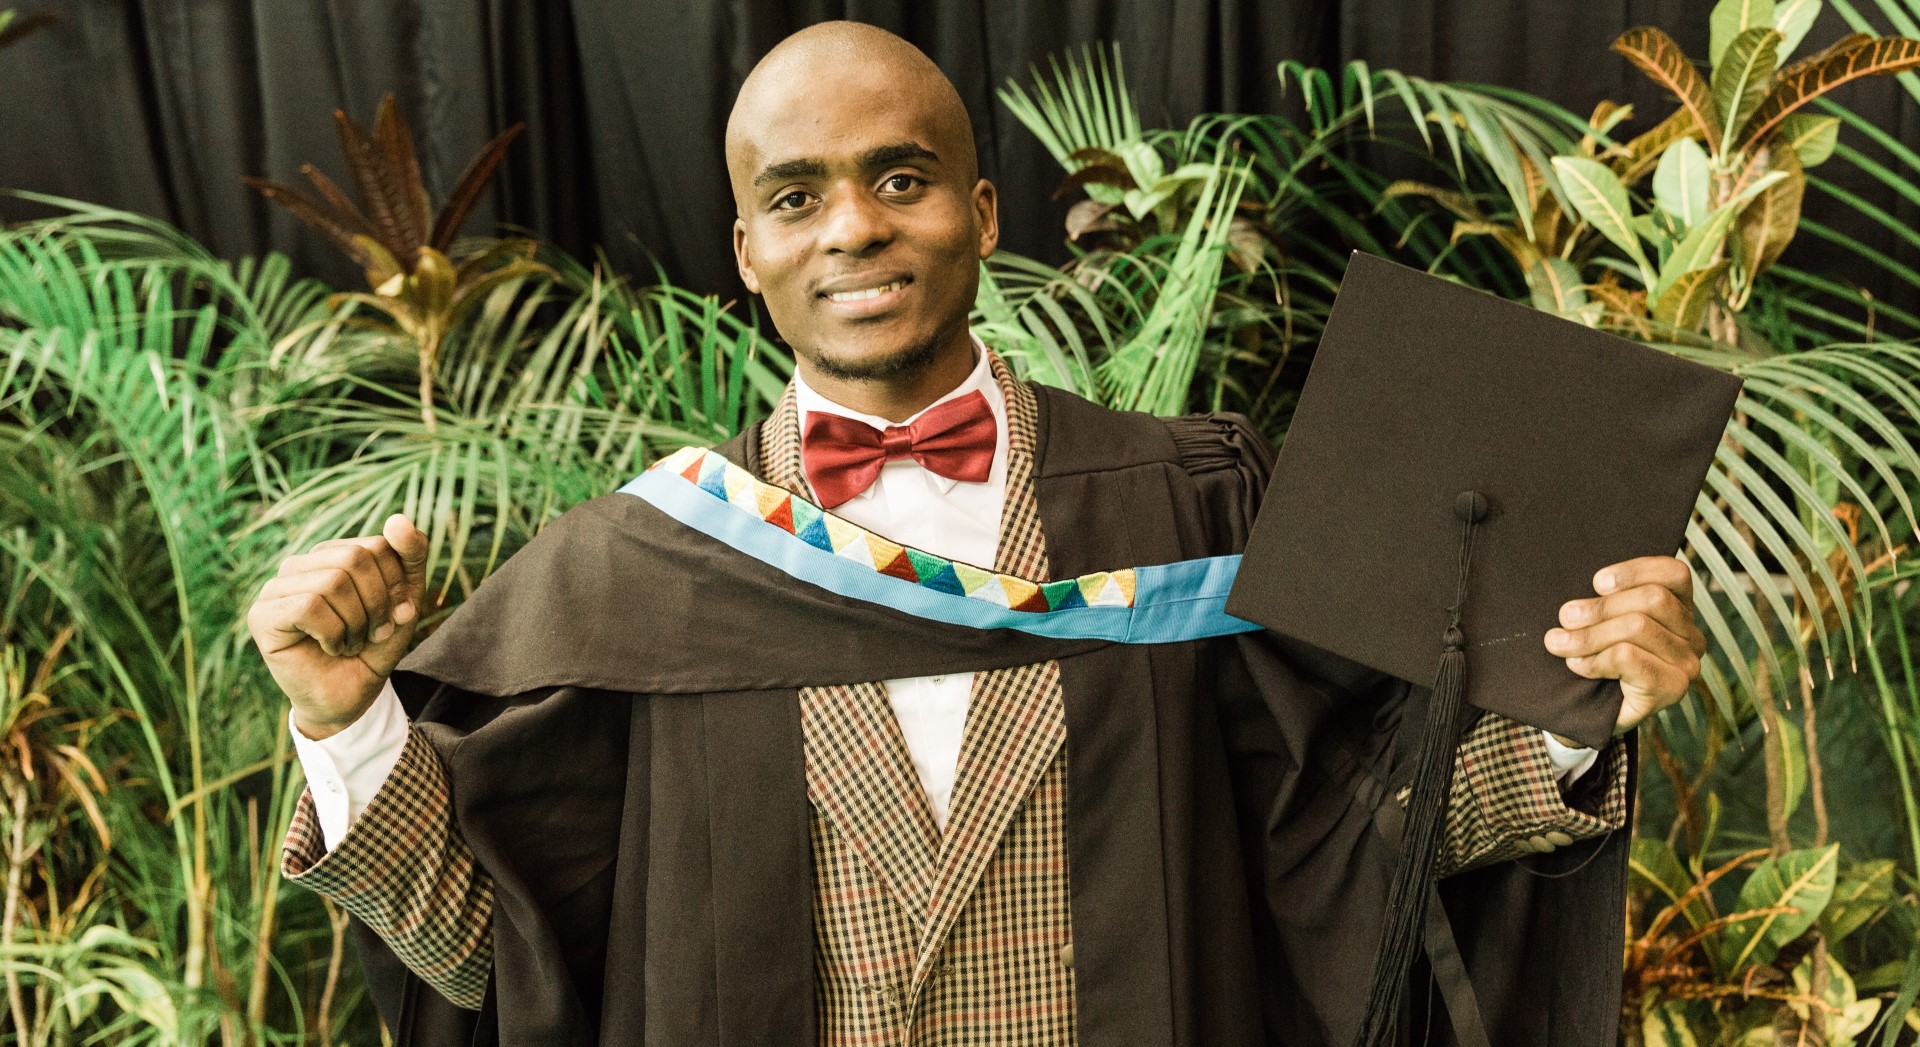 Mr Khethani Njoko recently, a Bachelor of Social Sciences graduate.